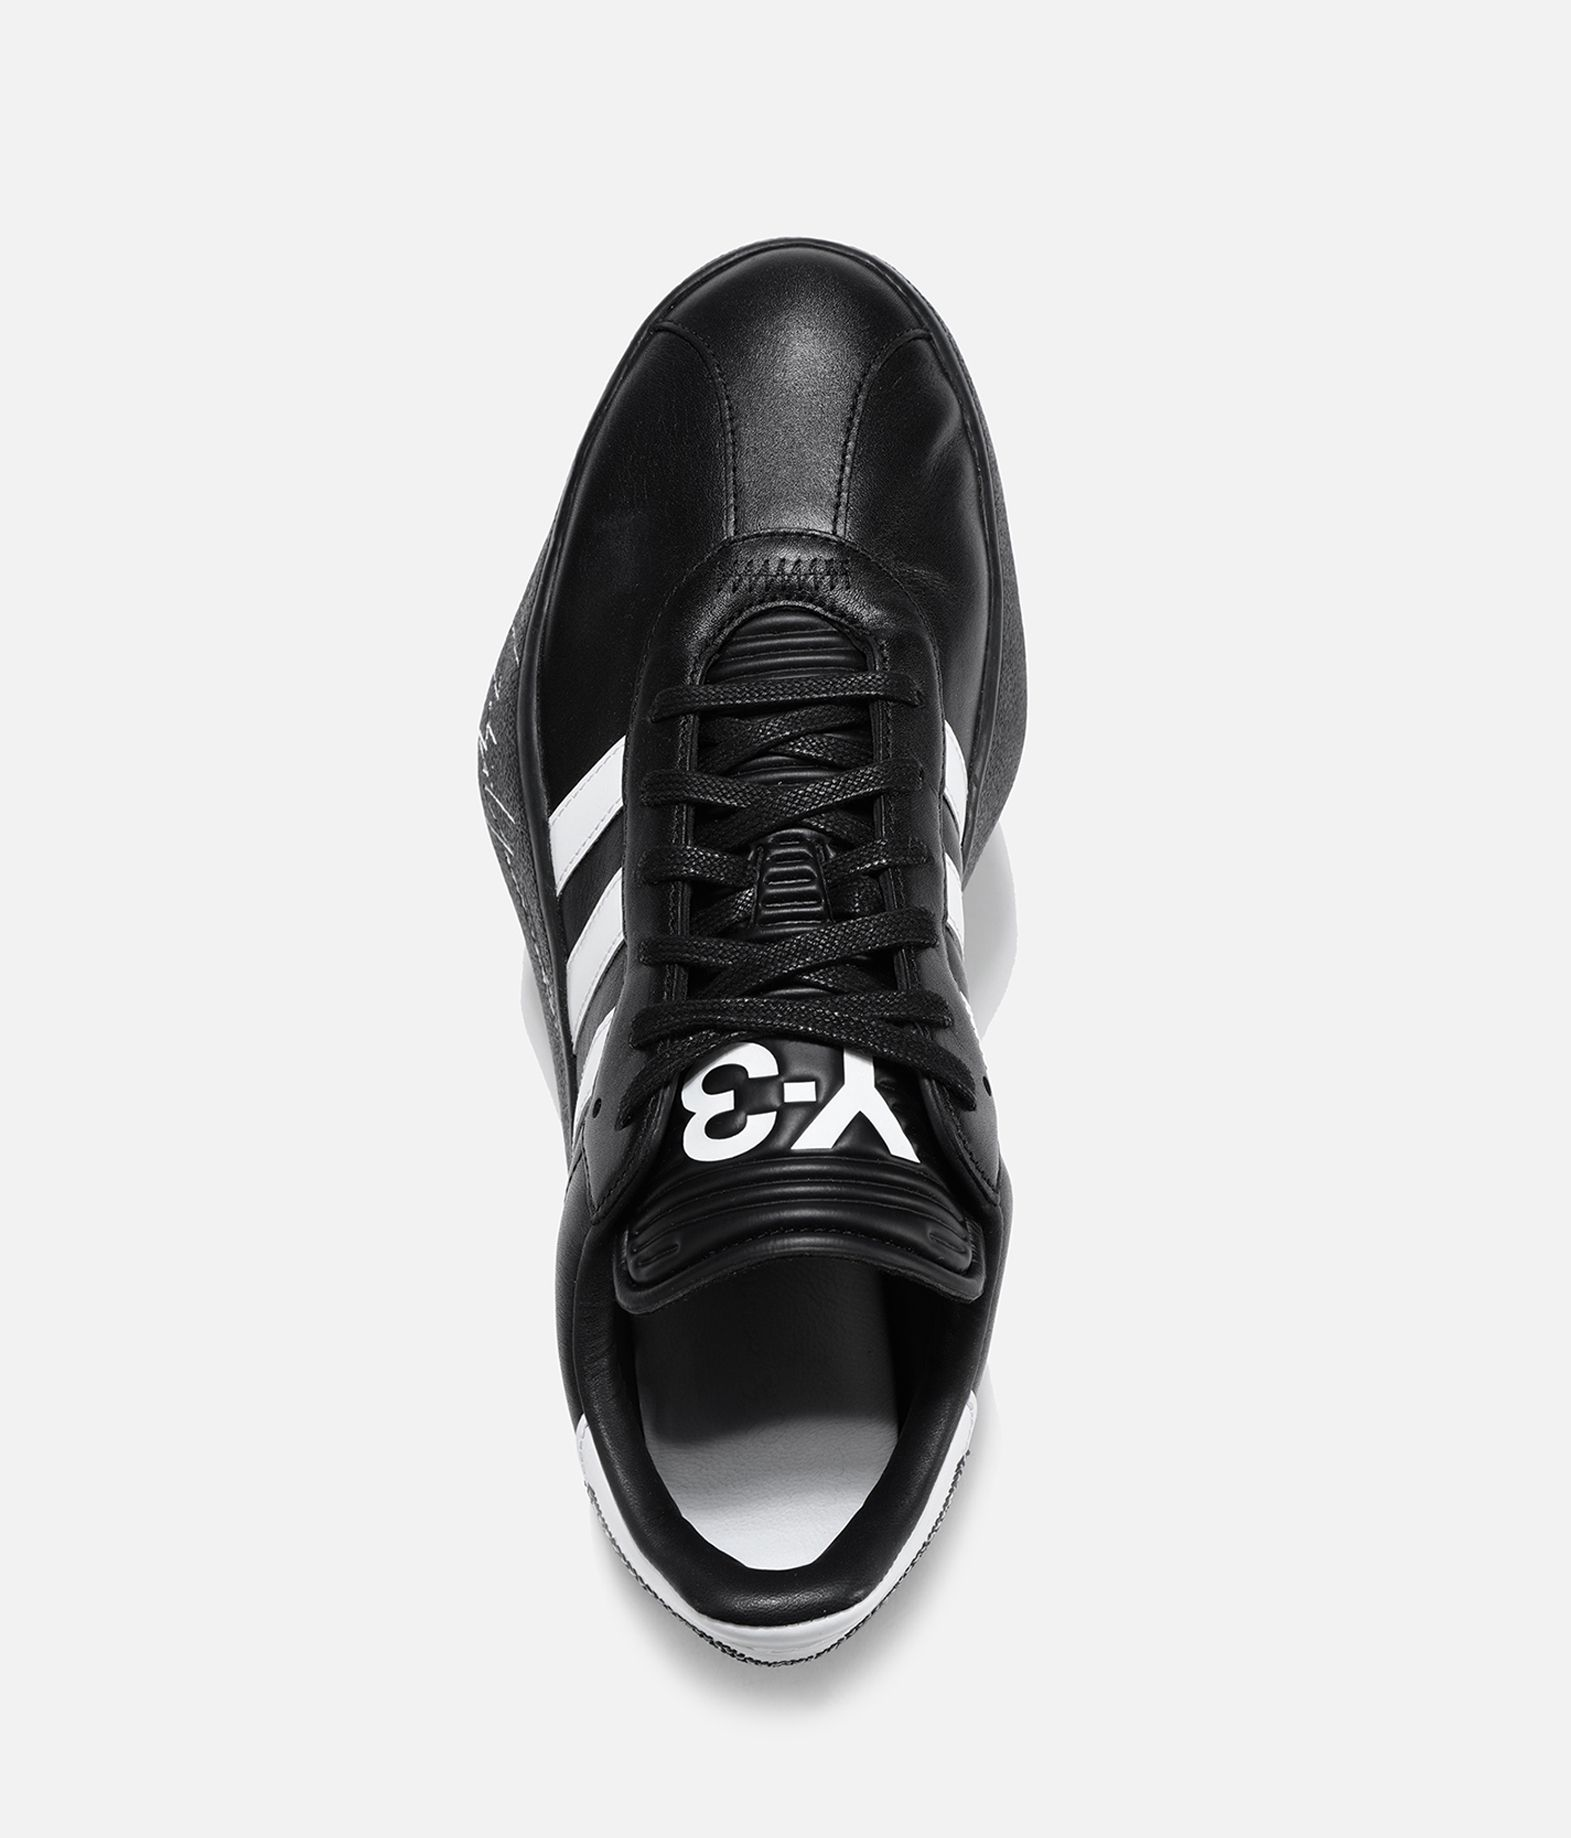 Y-3 Y-3 Tangutsu Football スニーカー メンズ c